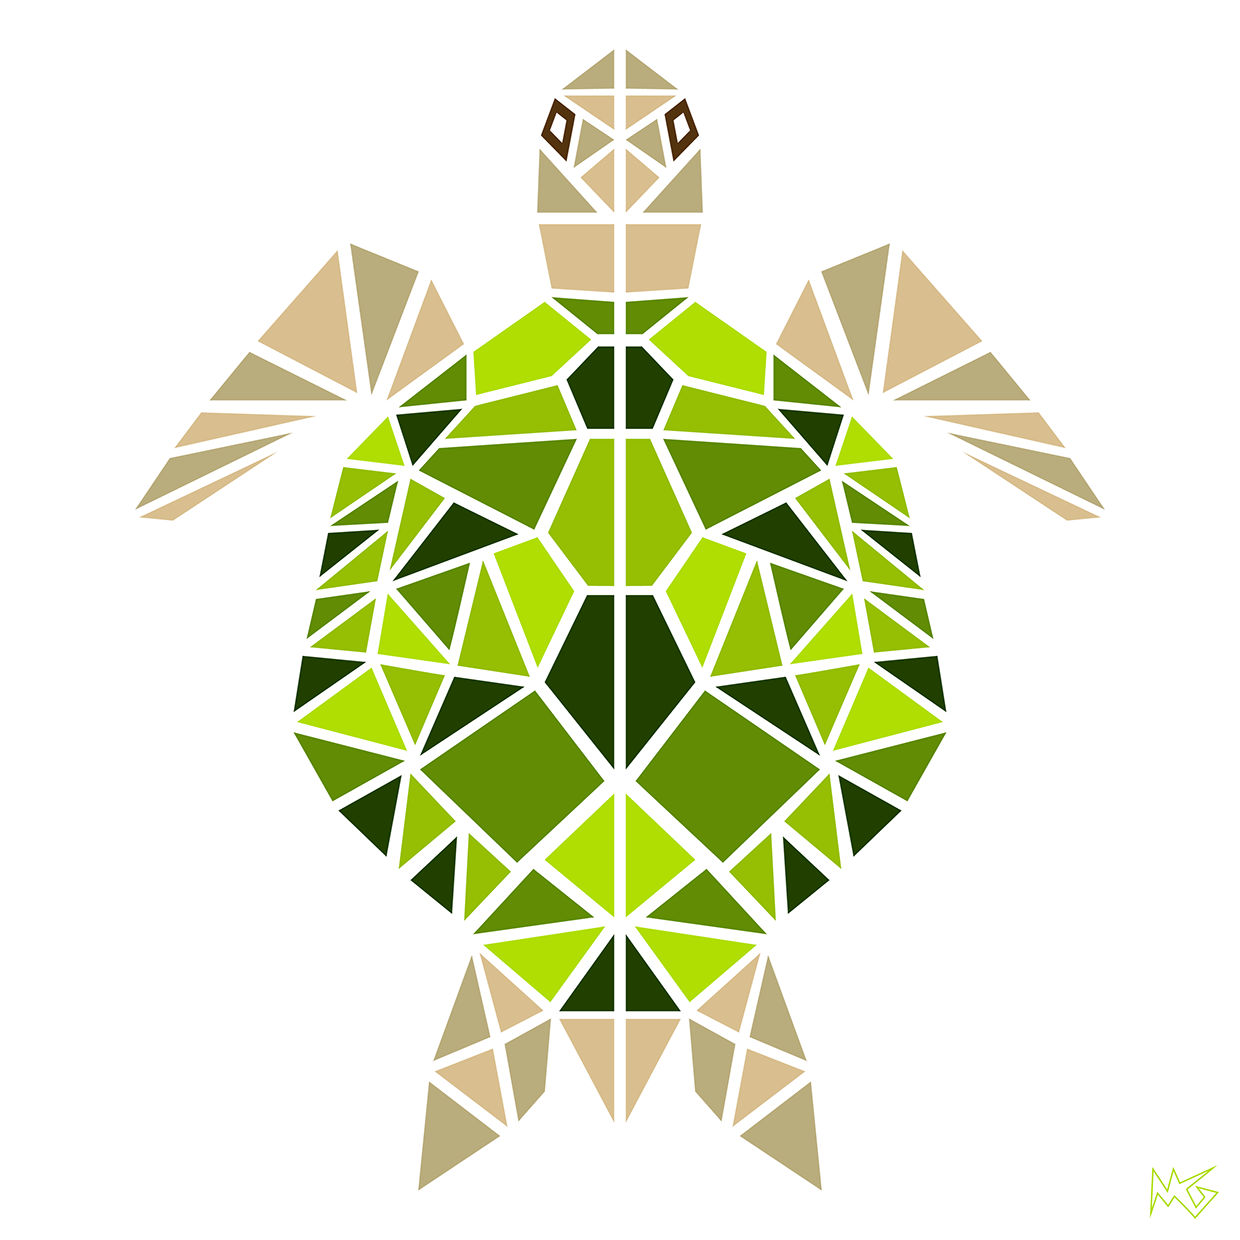 a geometric animal series created from shapes and monochromatic